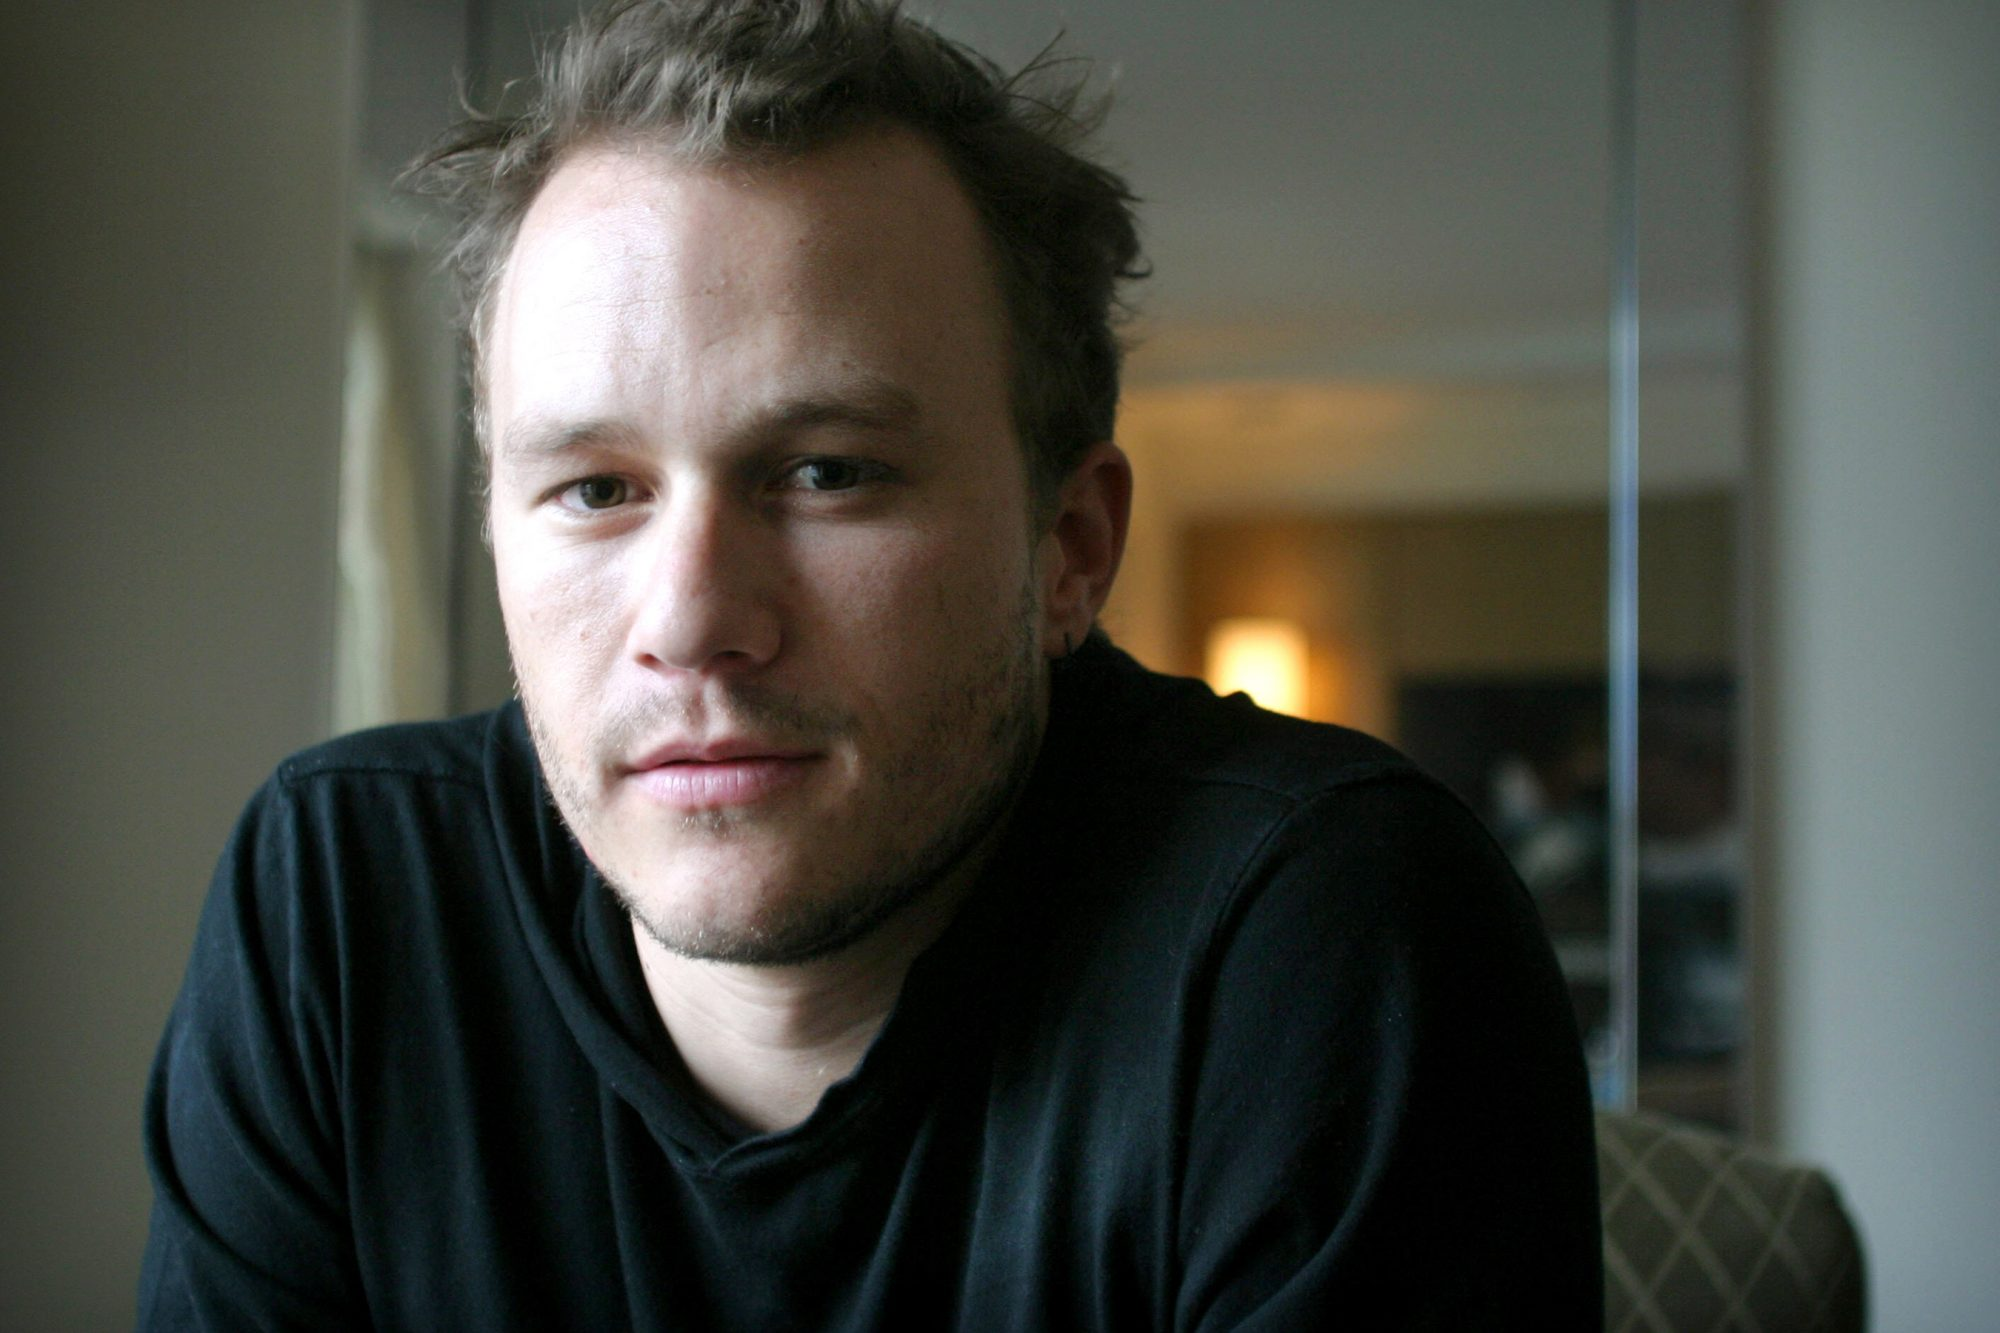 Heath Ledger Portrait Session